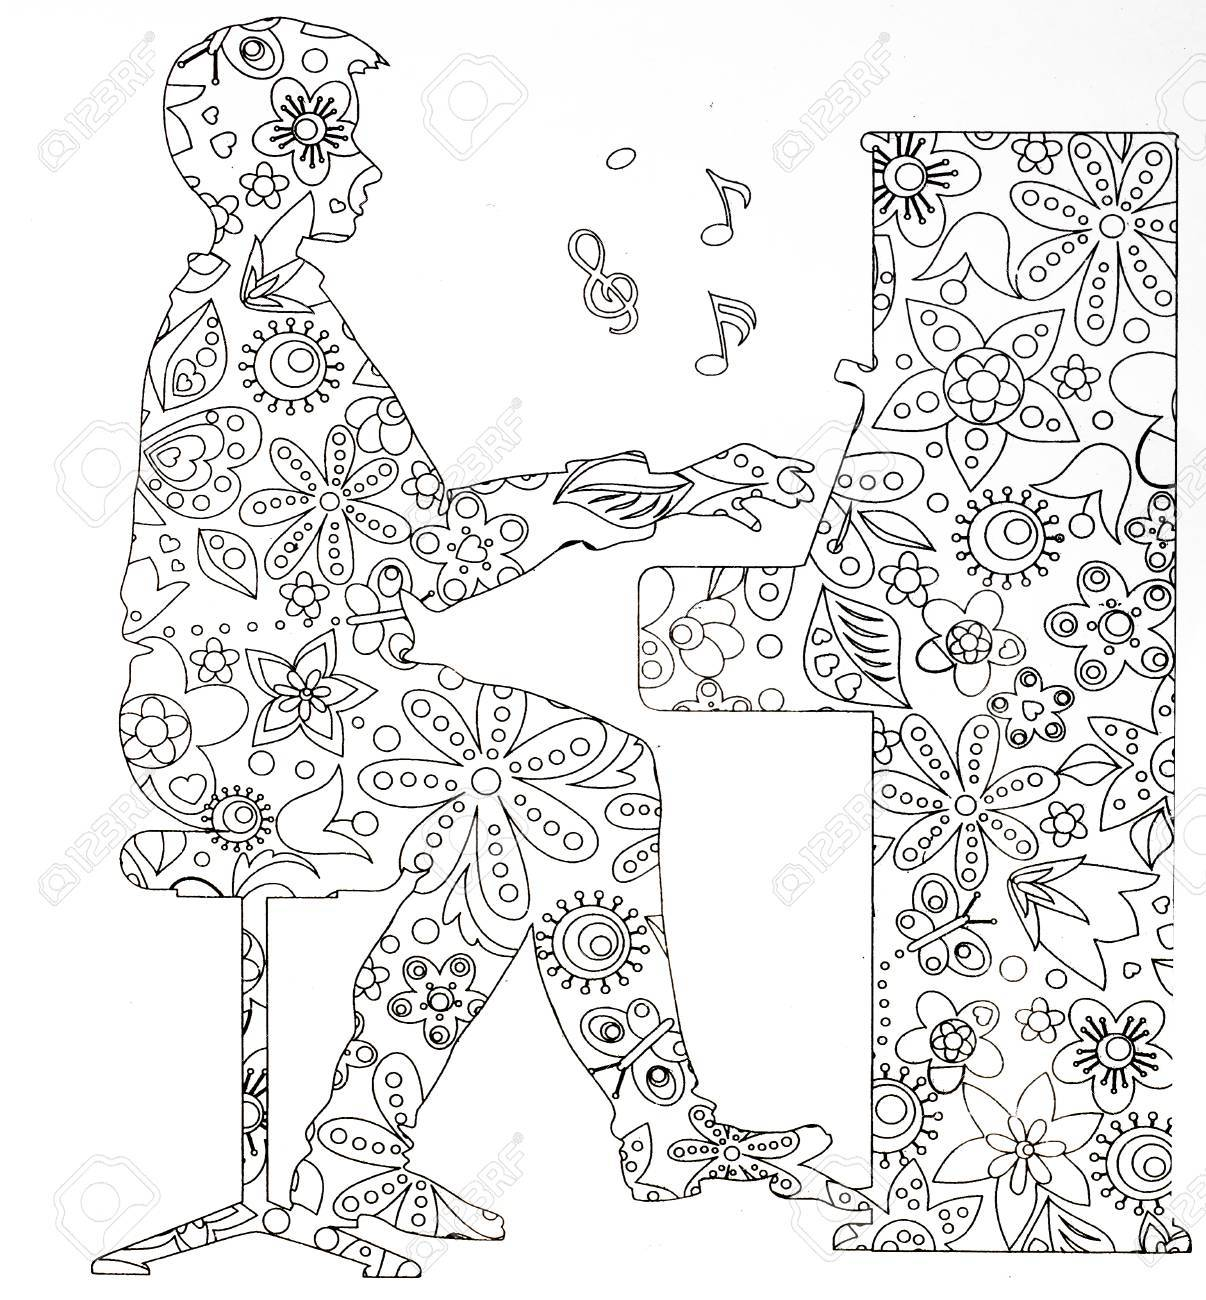 - Coloring Pages For Adults Musical Instruments On White Background